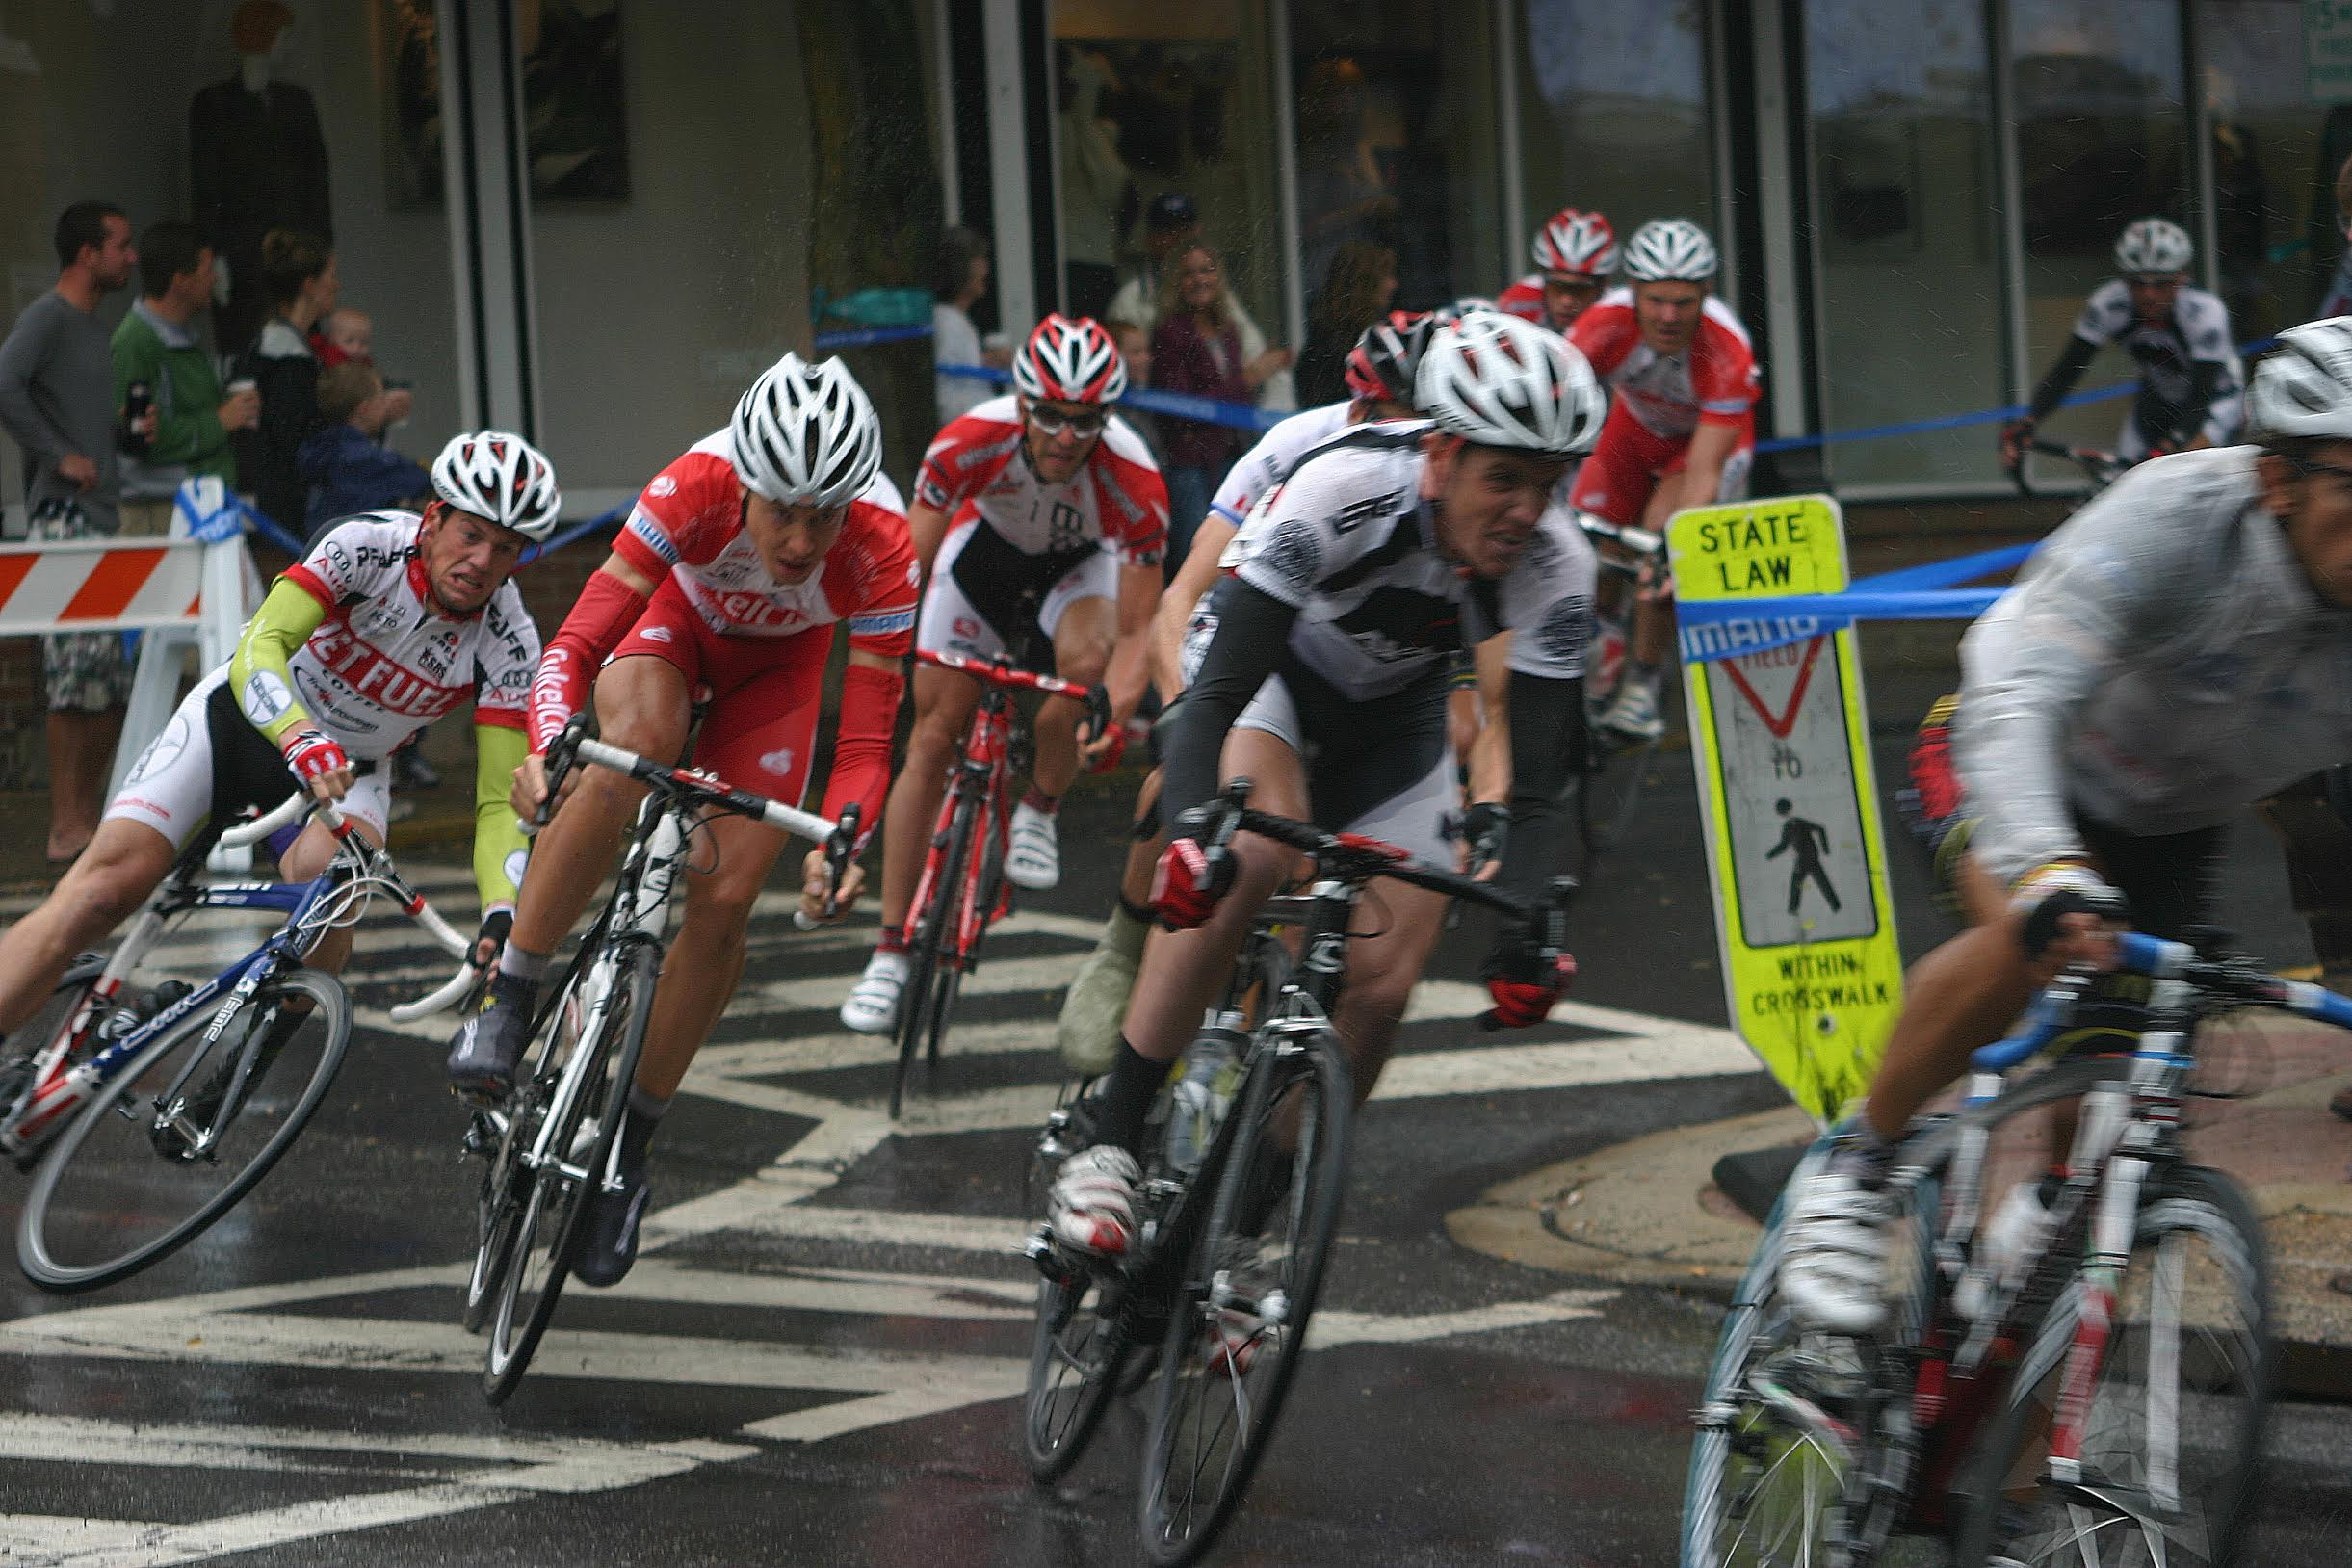 The 2010 Doylestown Criterium had the unfortunate combination of rain and painted roadways. Perhaps if they moved the pedestrain sign into the road things would have been safer. Photo courtesy Chuck Rudy.